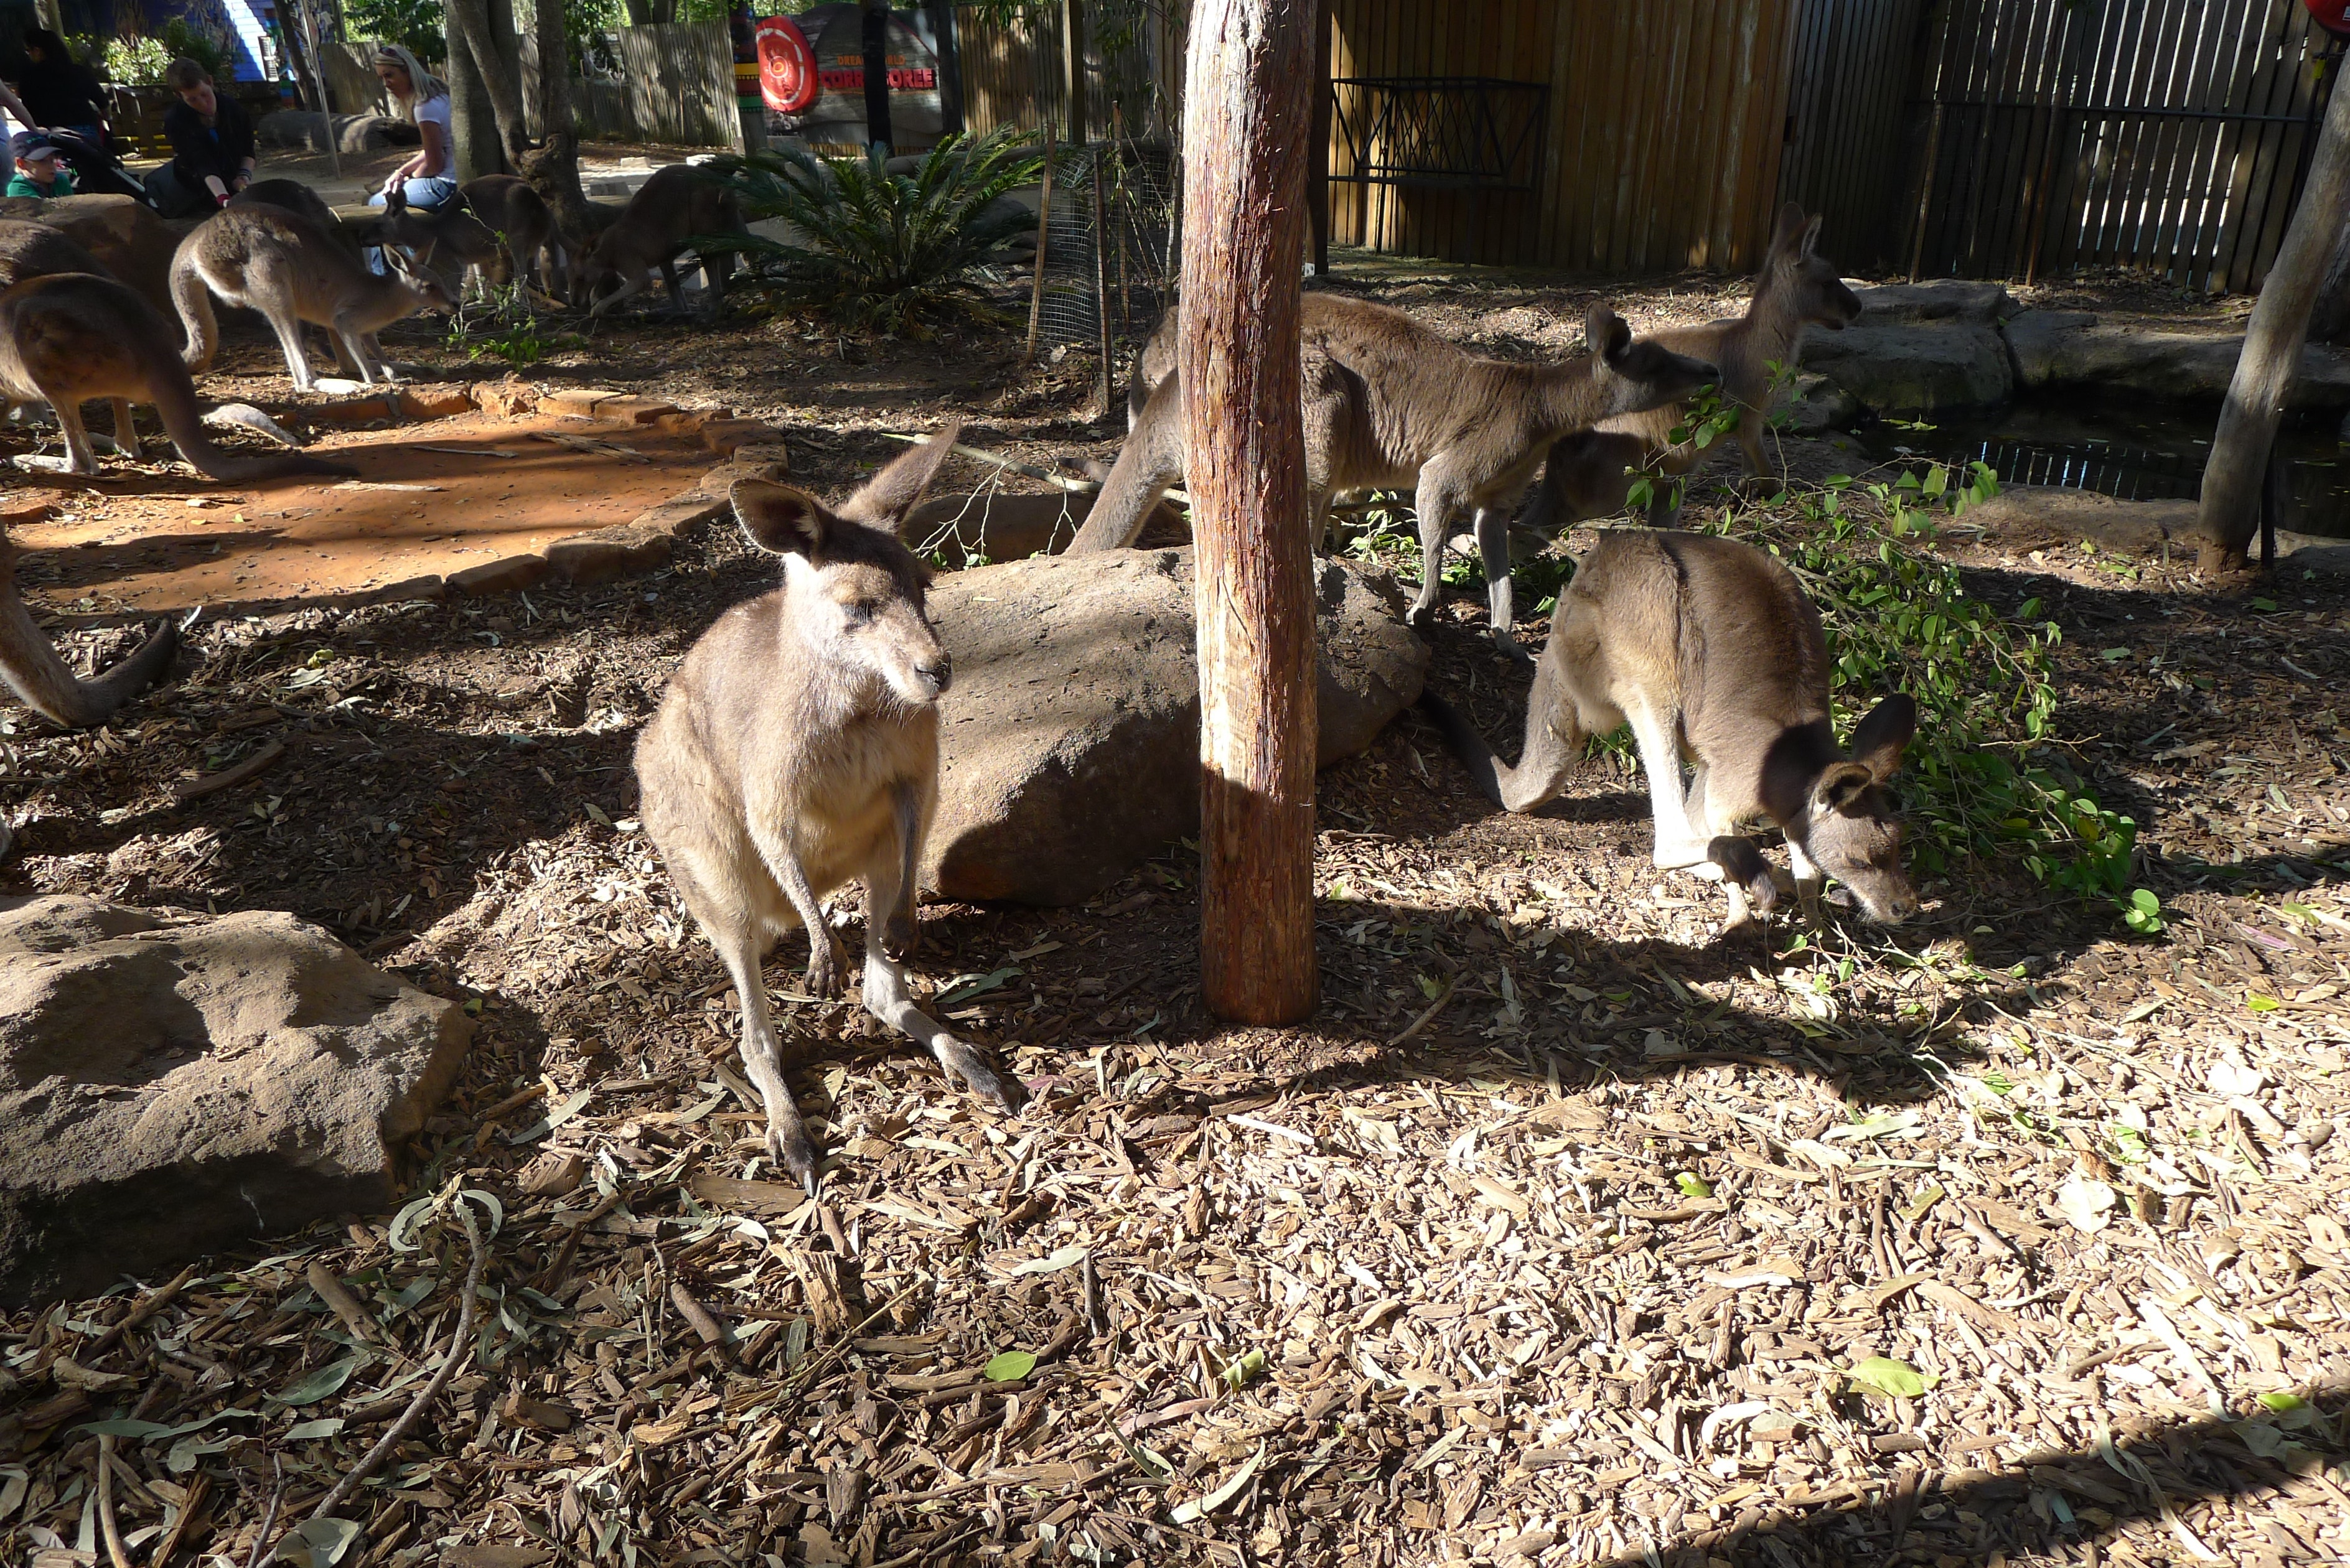 Kangaroos at Dreamworld Gold Coast